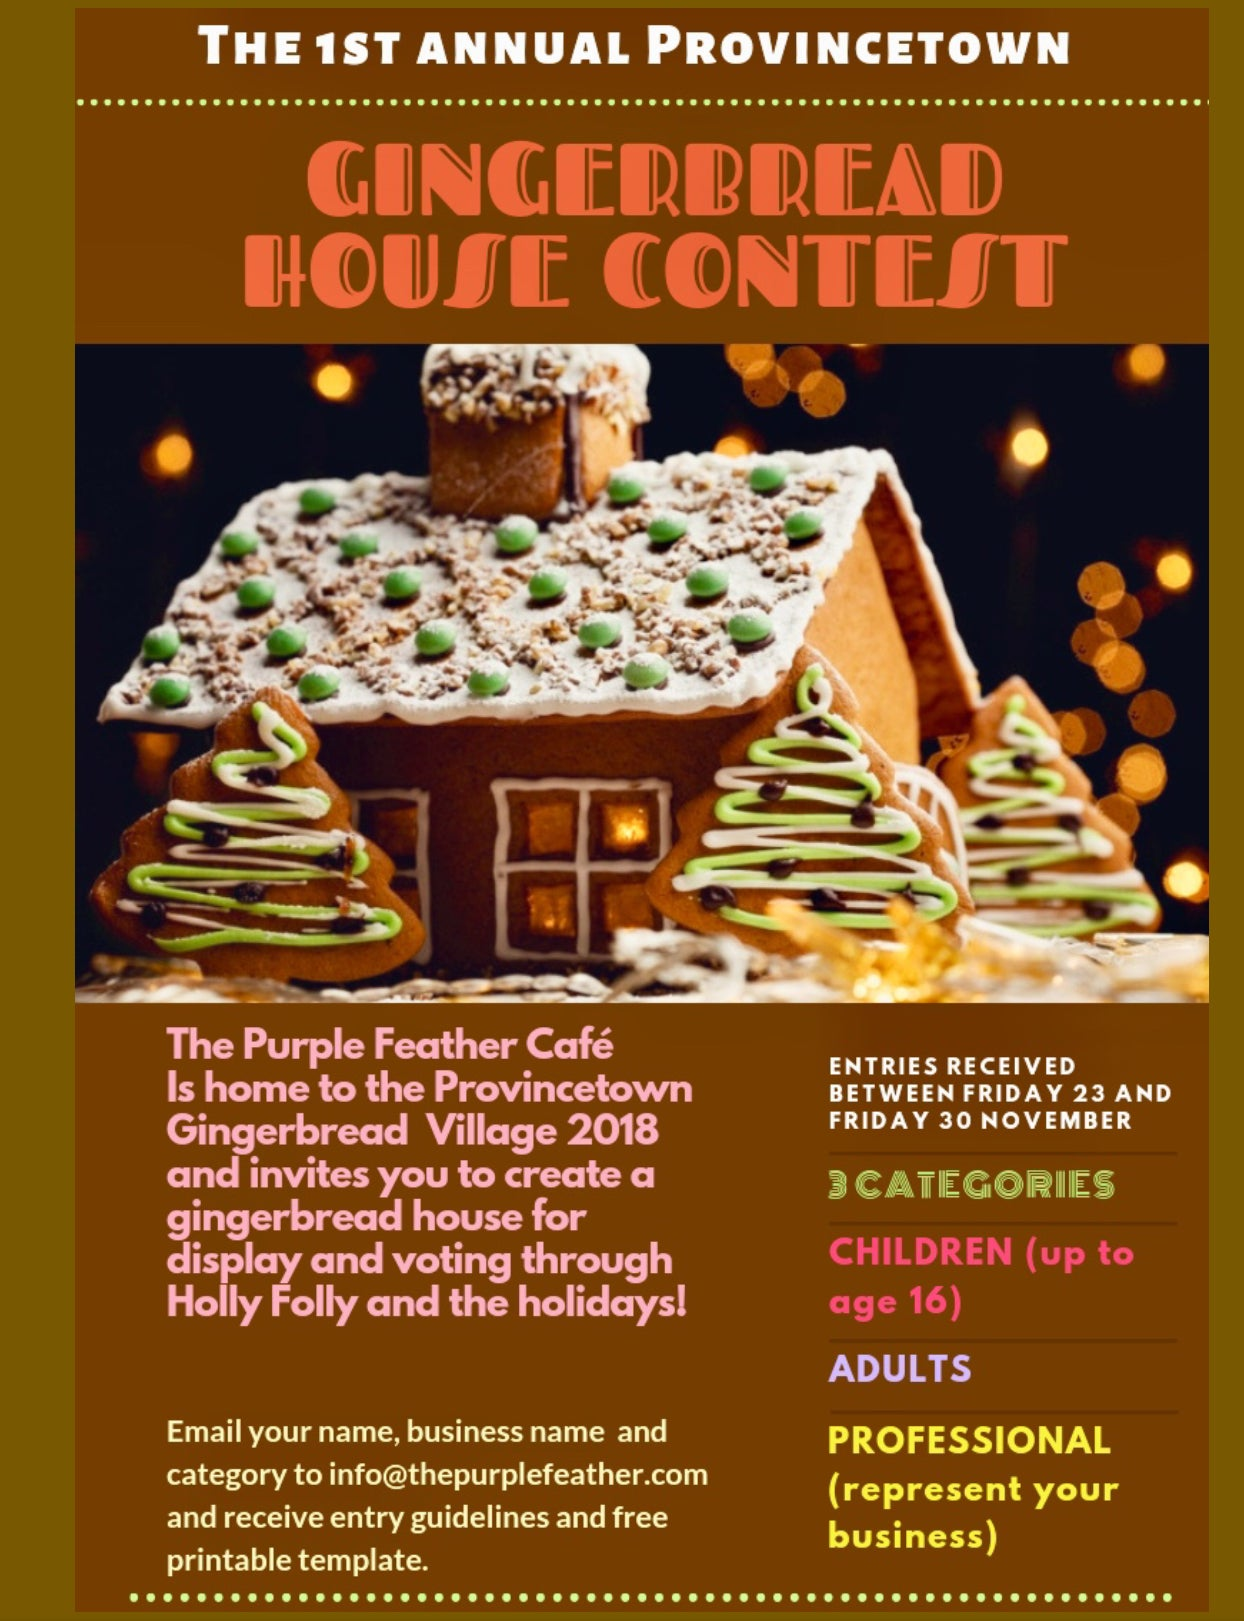 Purple Feathers First Annual Gingerbread House Contest The Purple